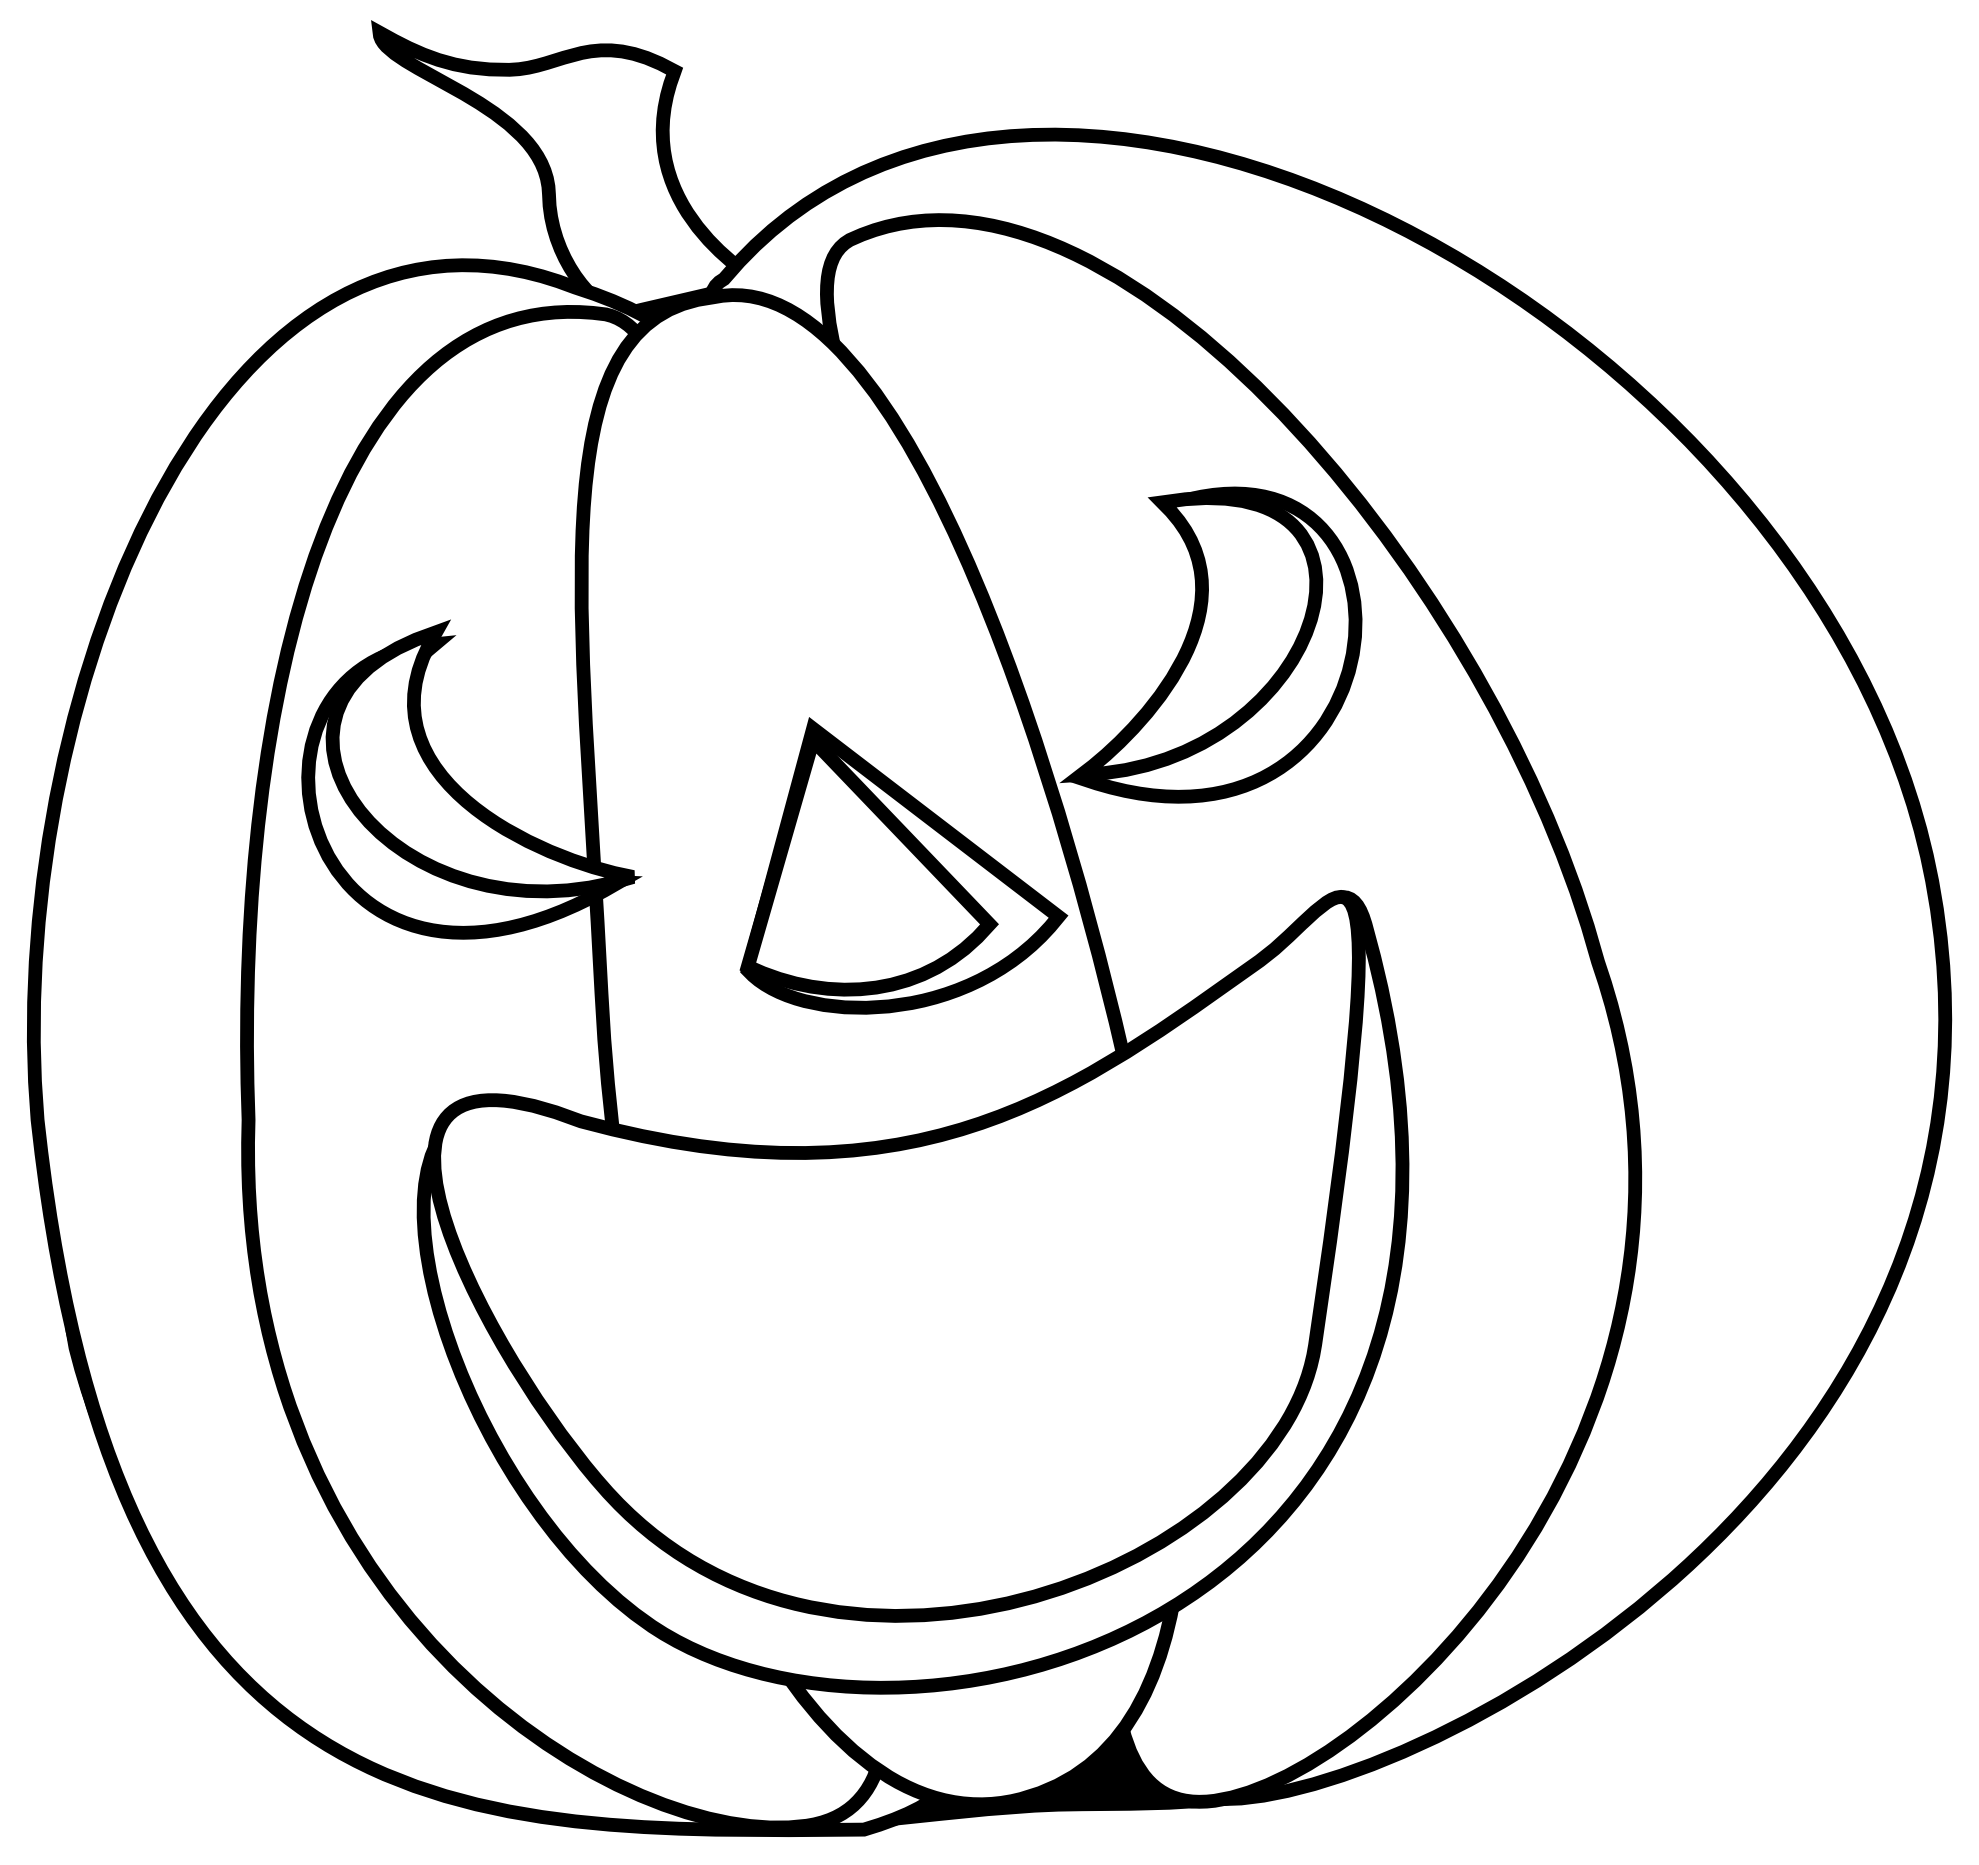 black and white halloween pumpkin clipart clipart panda gourd clipart free ground clipart